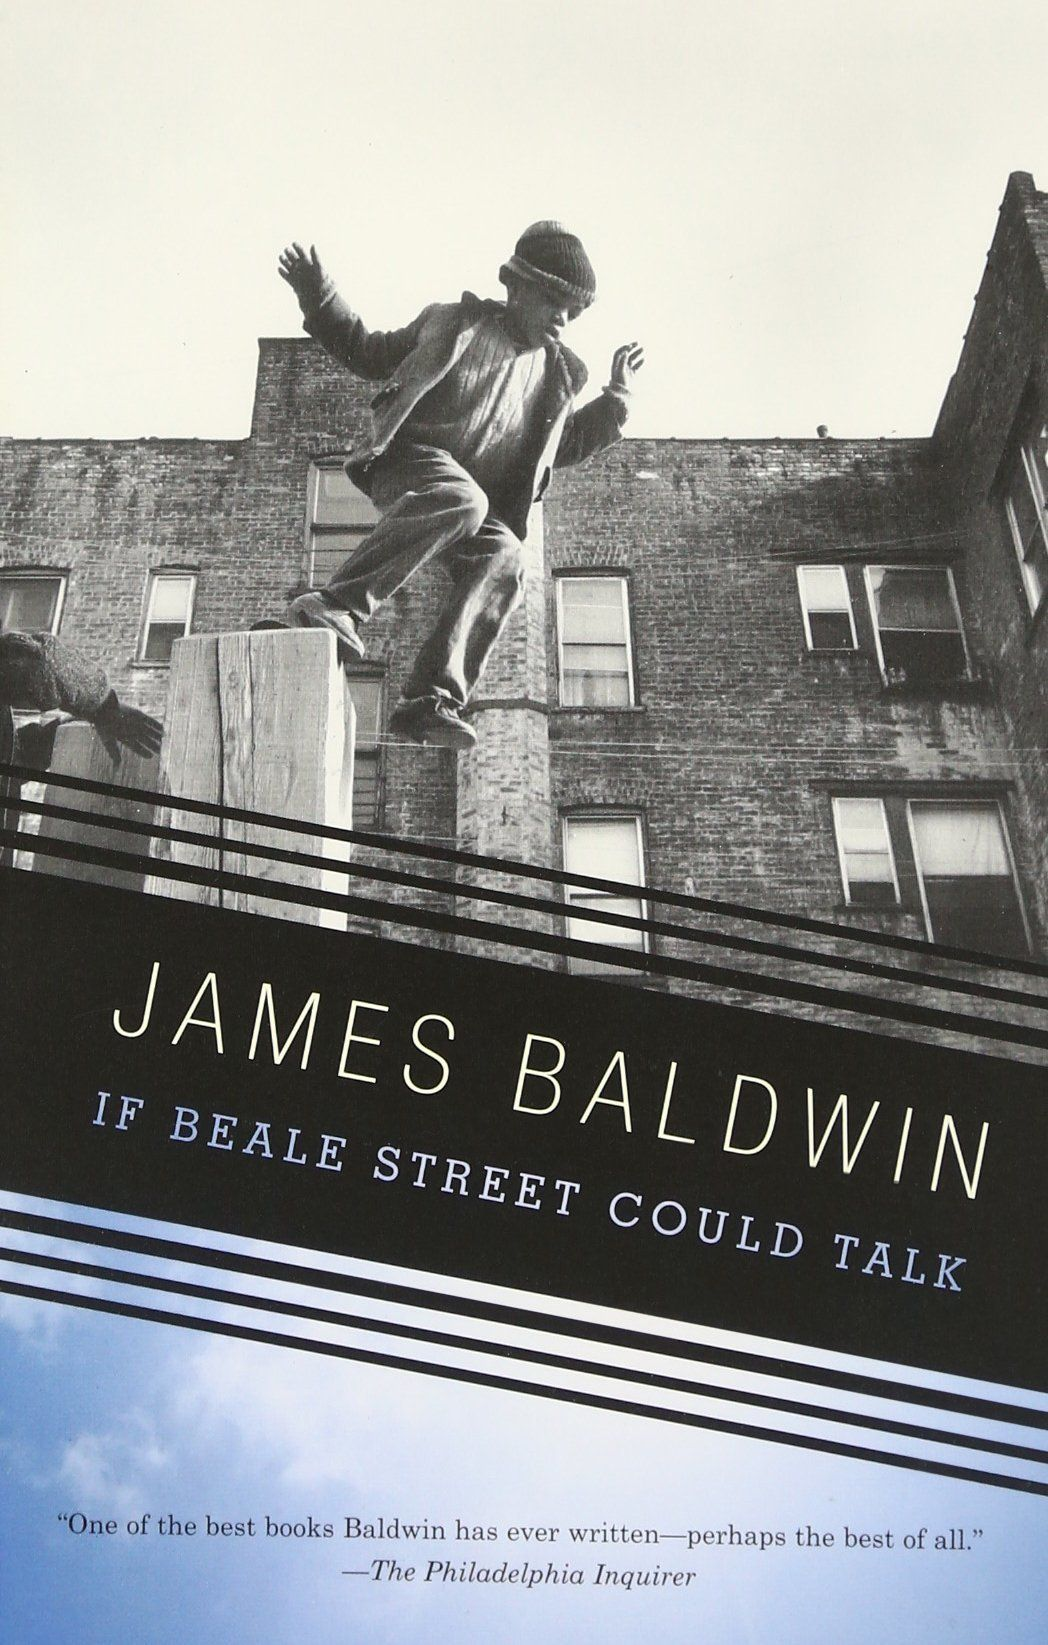 James Baldwin, If Beale Street Could Talk, Beale Street, African American Literature, African American Book, Jazz, Original Art Form, KOLUMN Magazine, KOLUMN, KINDR'D Magazine, KINDR'D, Willoughby Avenue, African American News